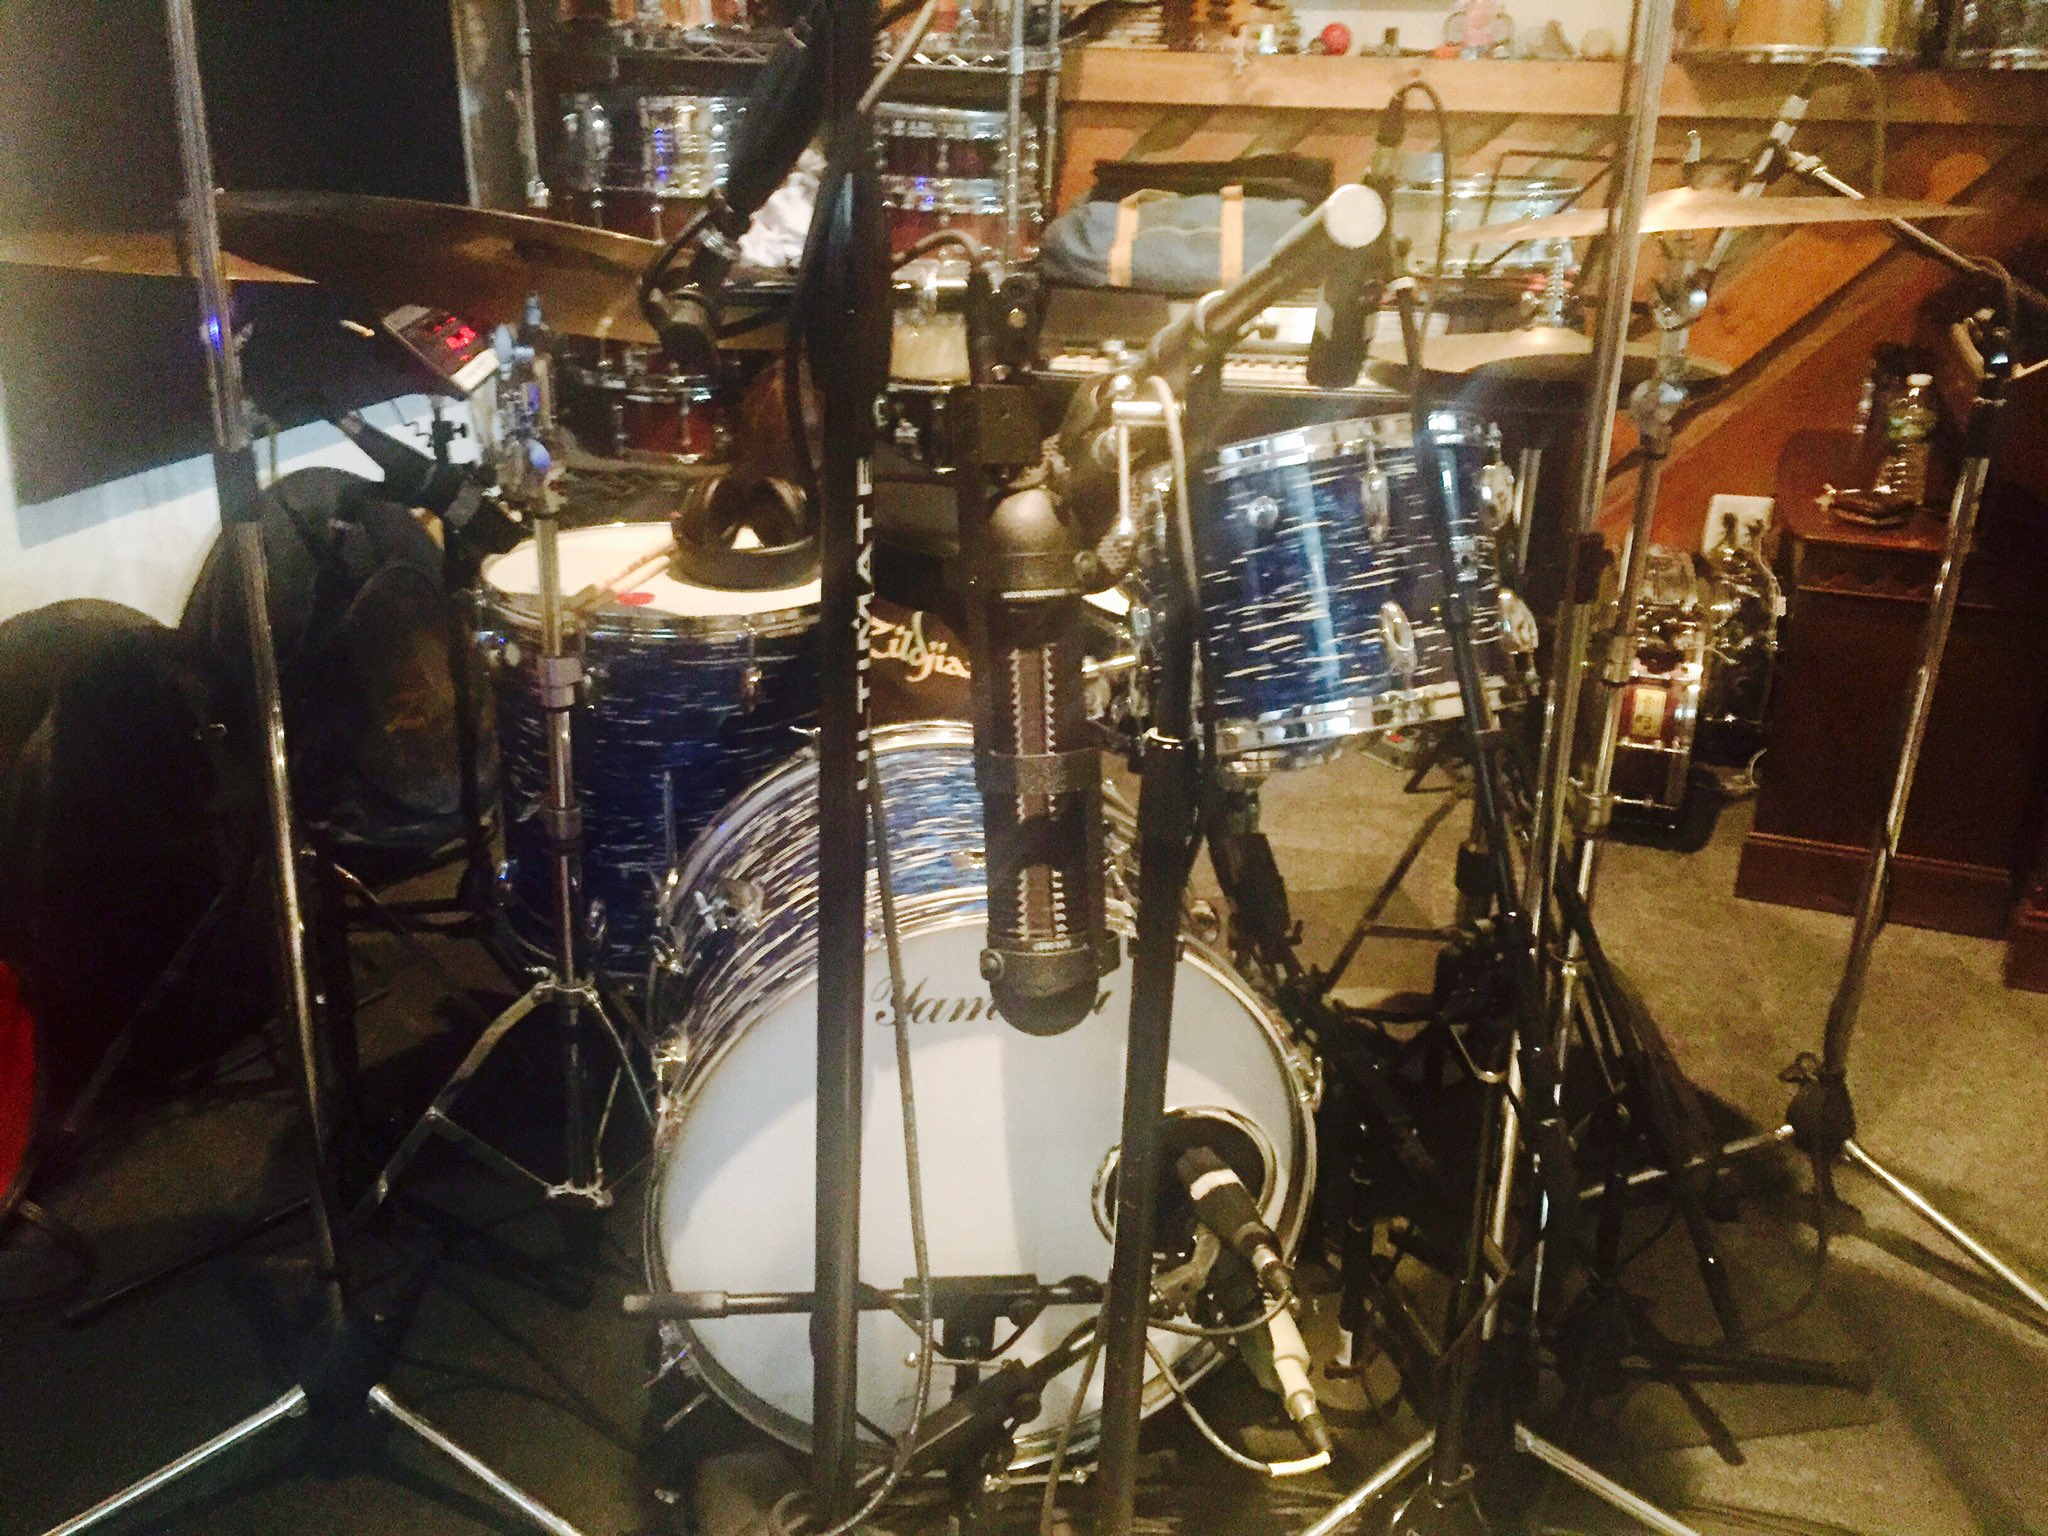 @YamahaDrums  loving this 1967 Yamaha kit.  Can't wait to check out the new recording series kit. https://t.co/gurwWswJZD